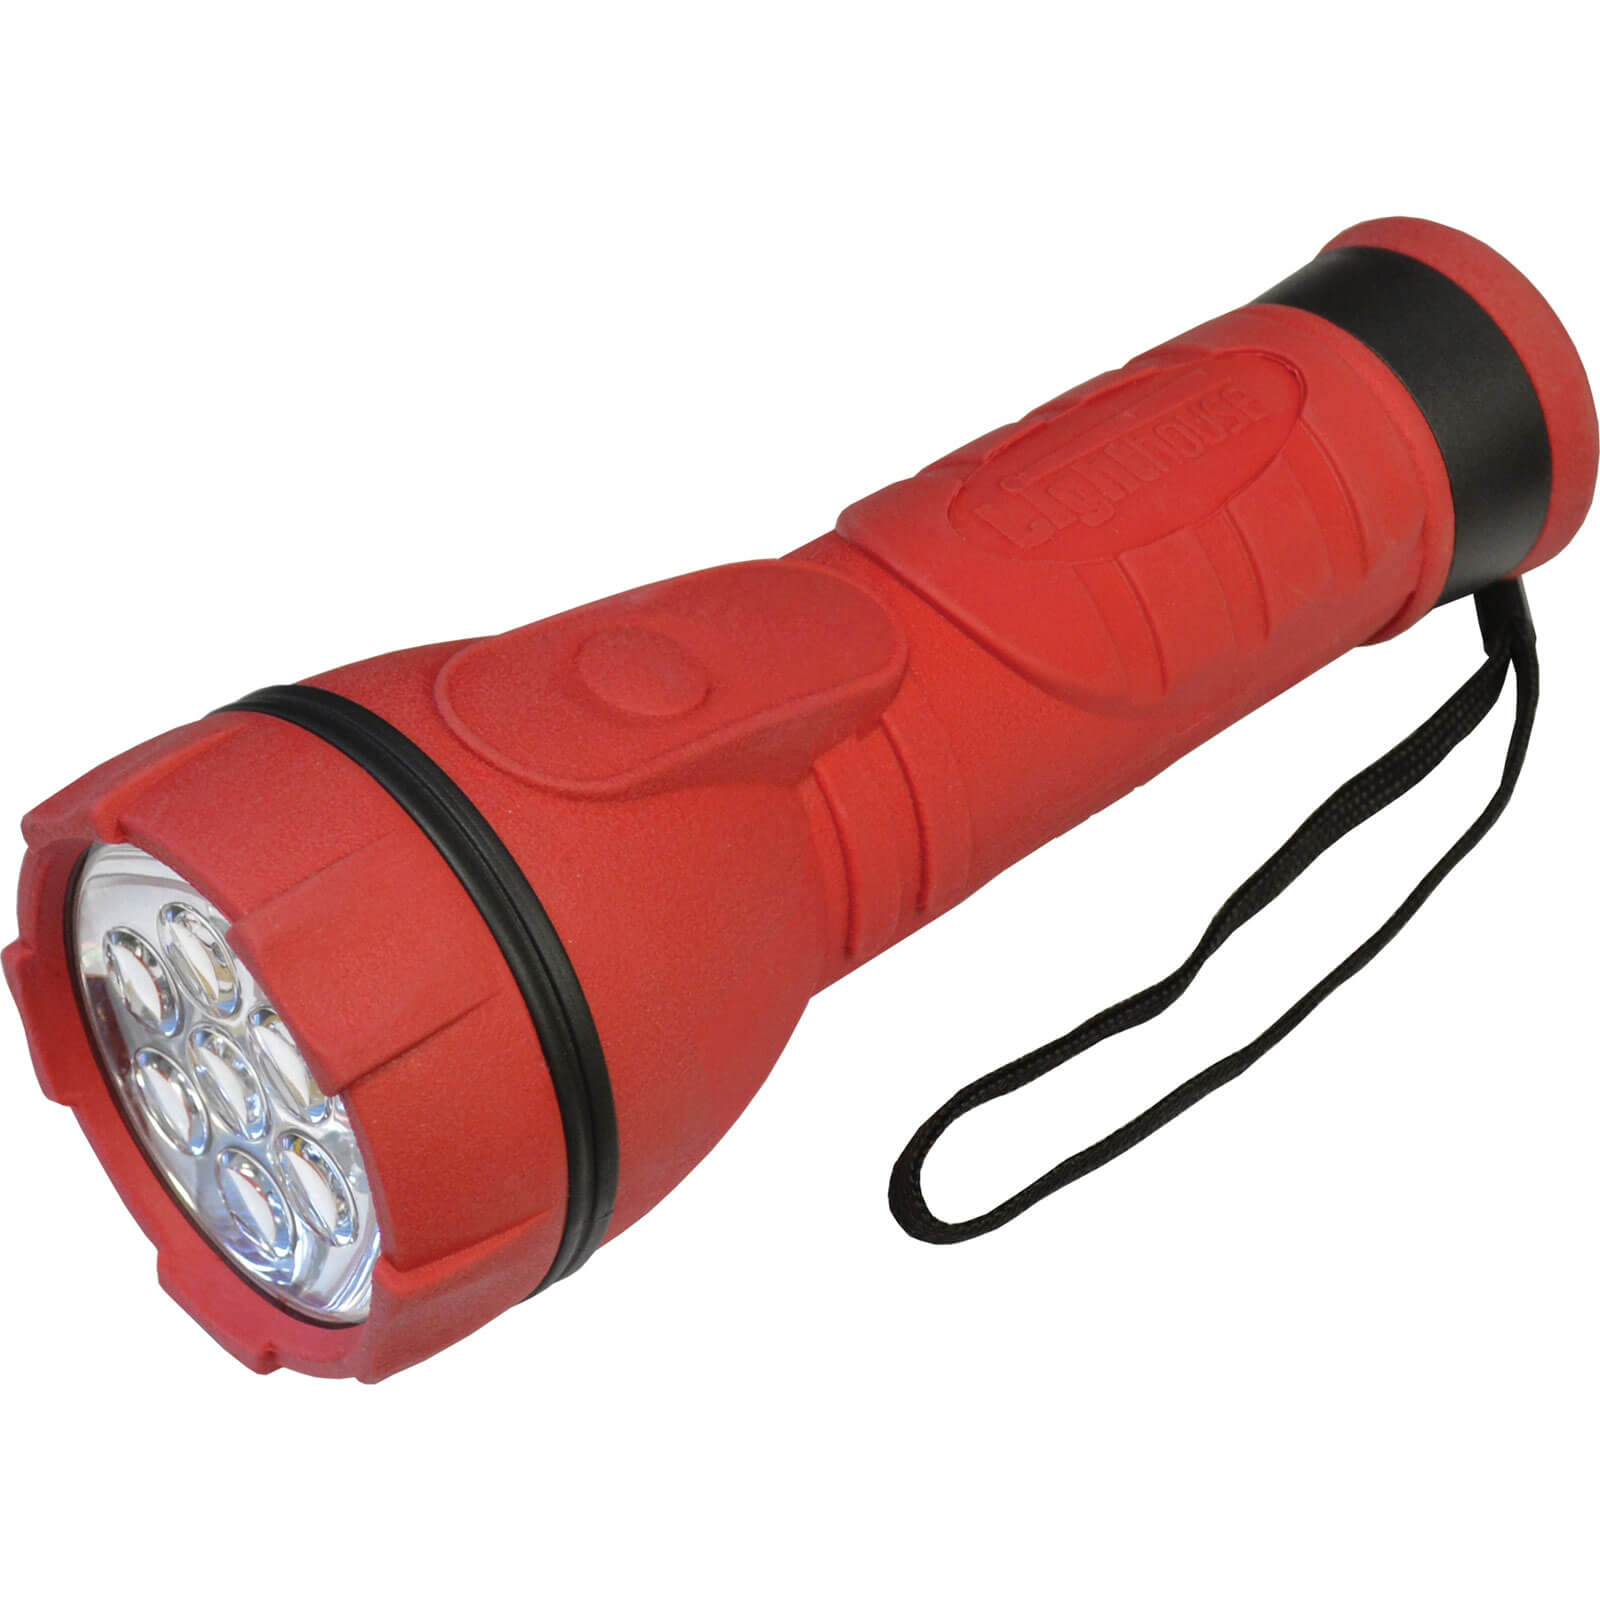 Image of Lighthouse 7 LED Rubber Torch Red